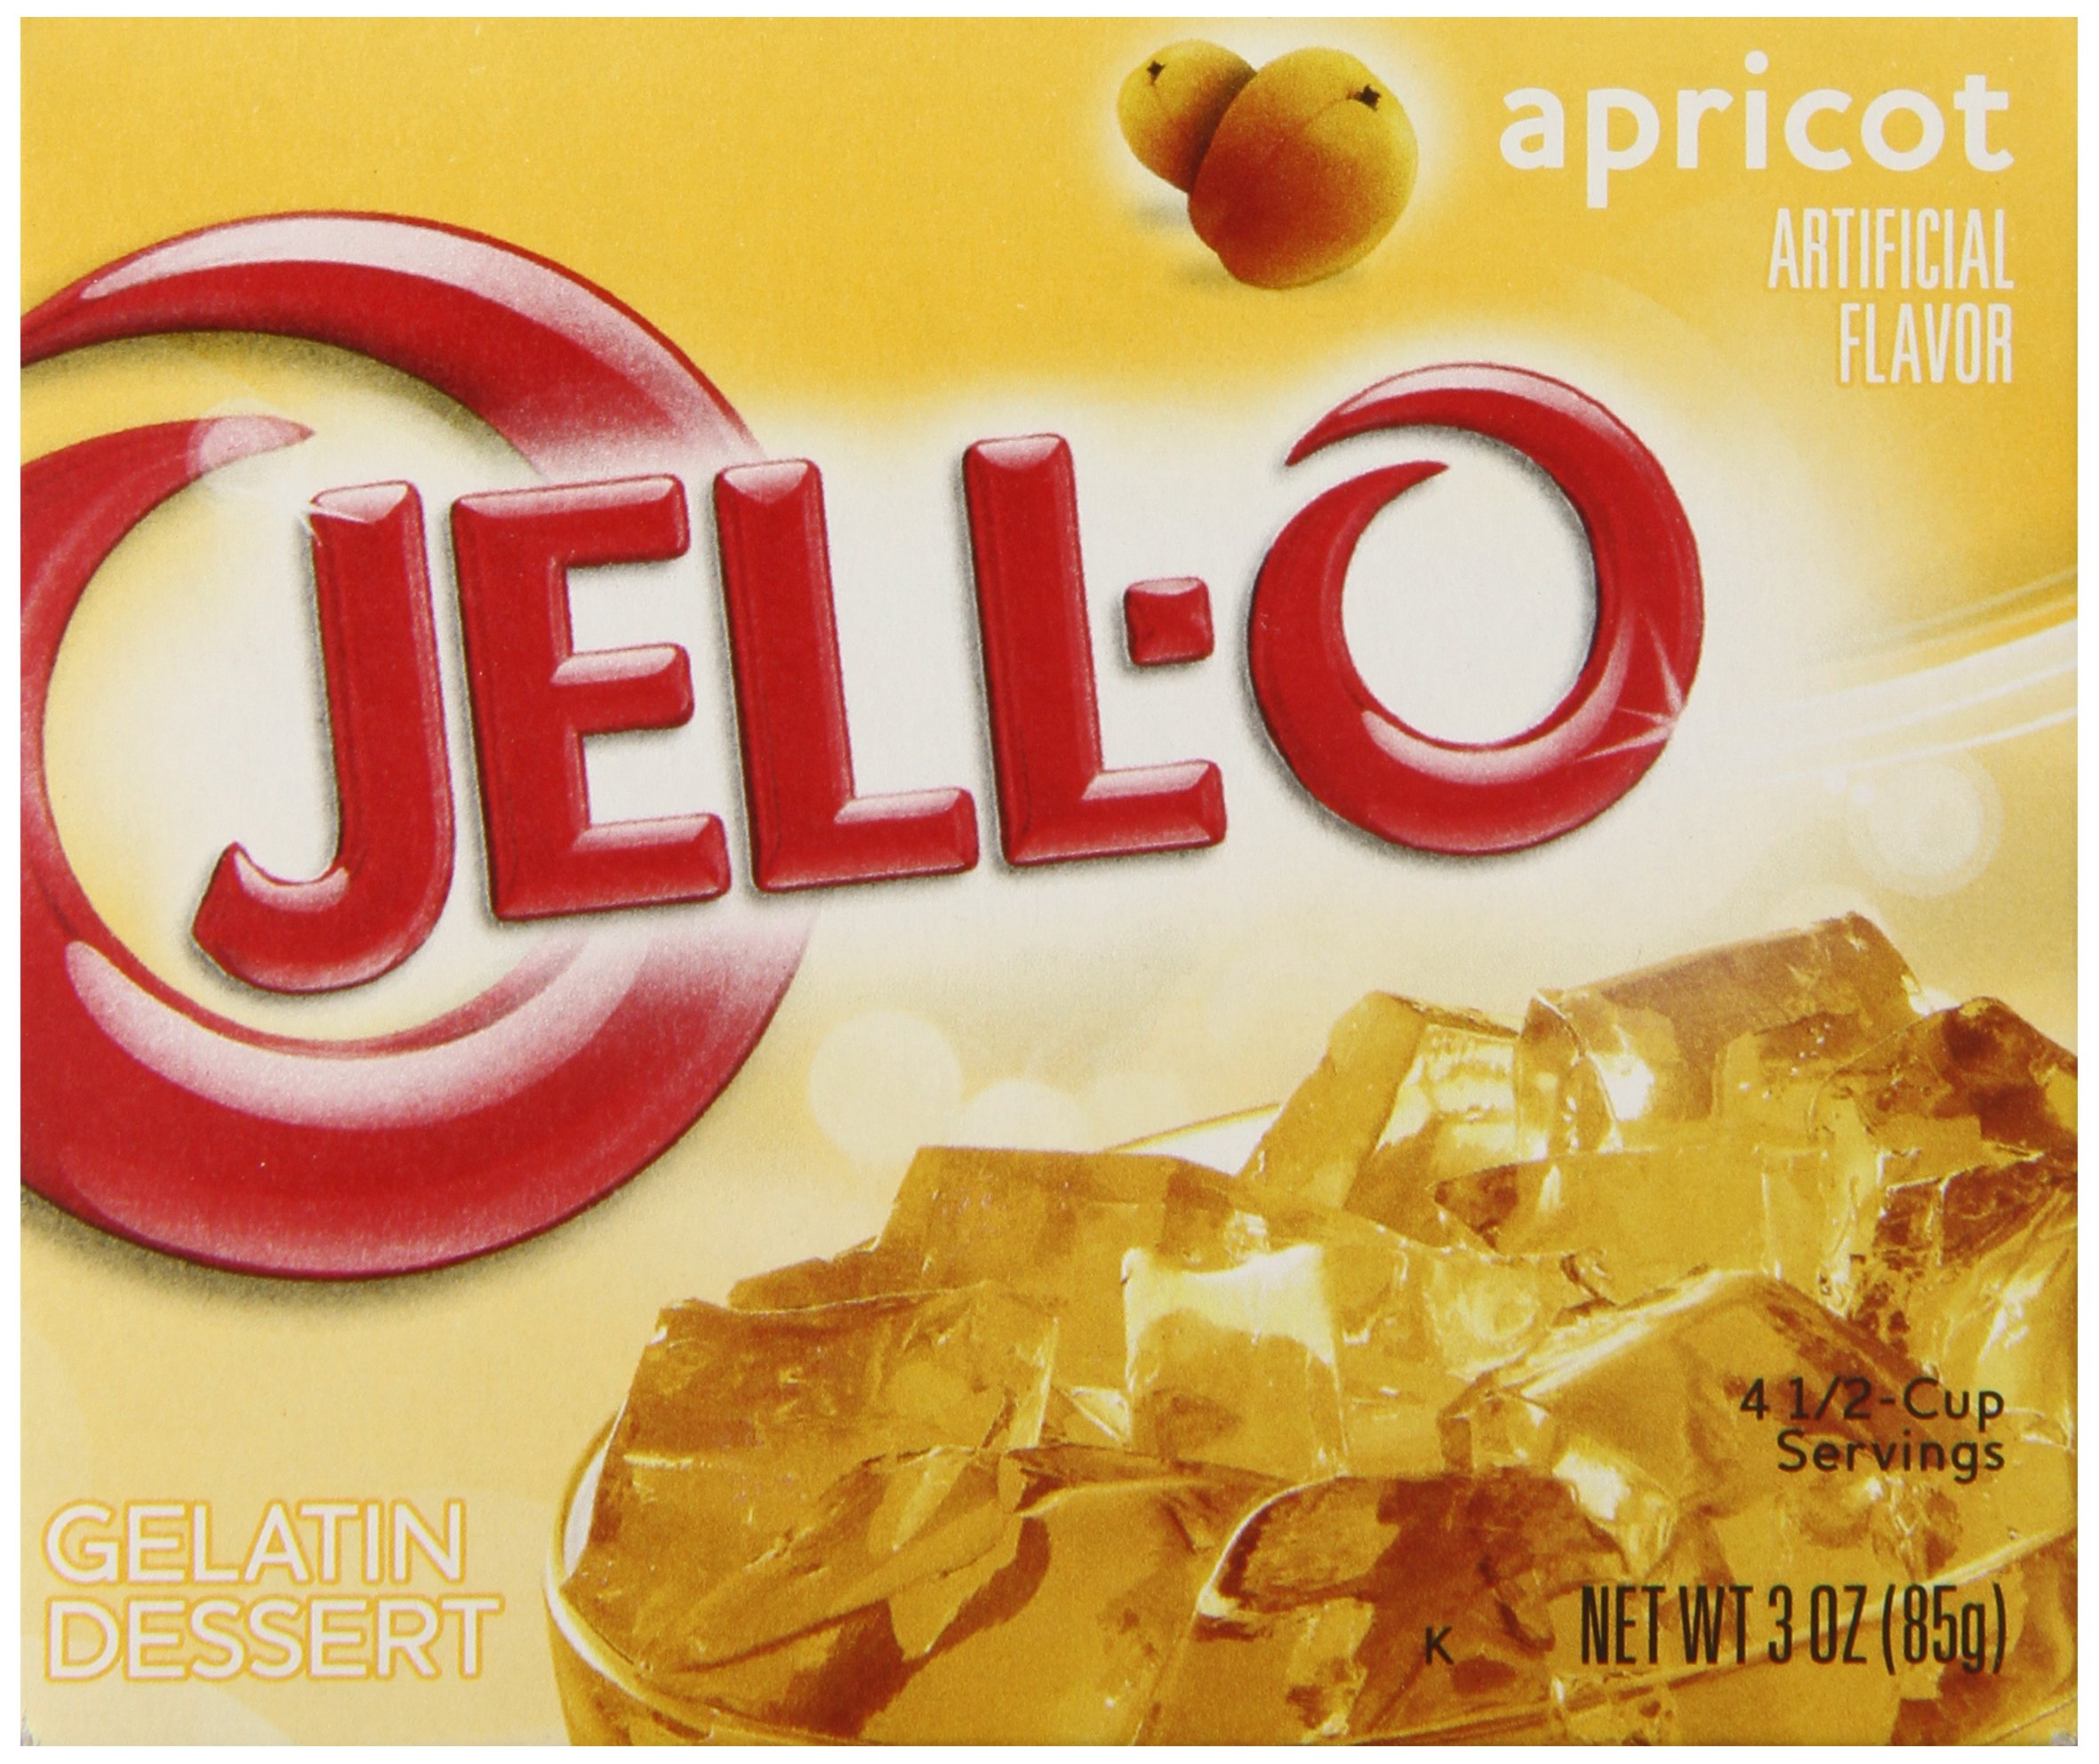 JELL-O Gelatin Dessert, Apricot, 3-Ounce by Jell-O (Image #1)